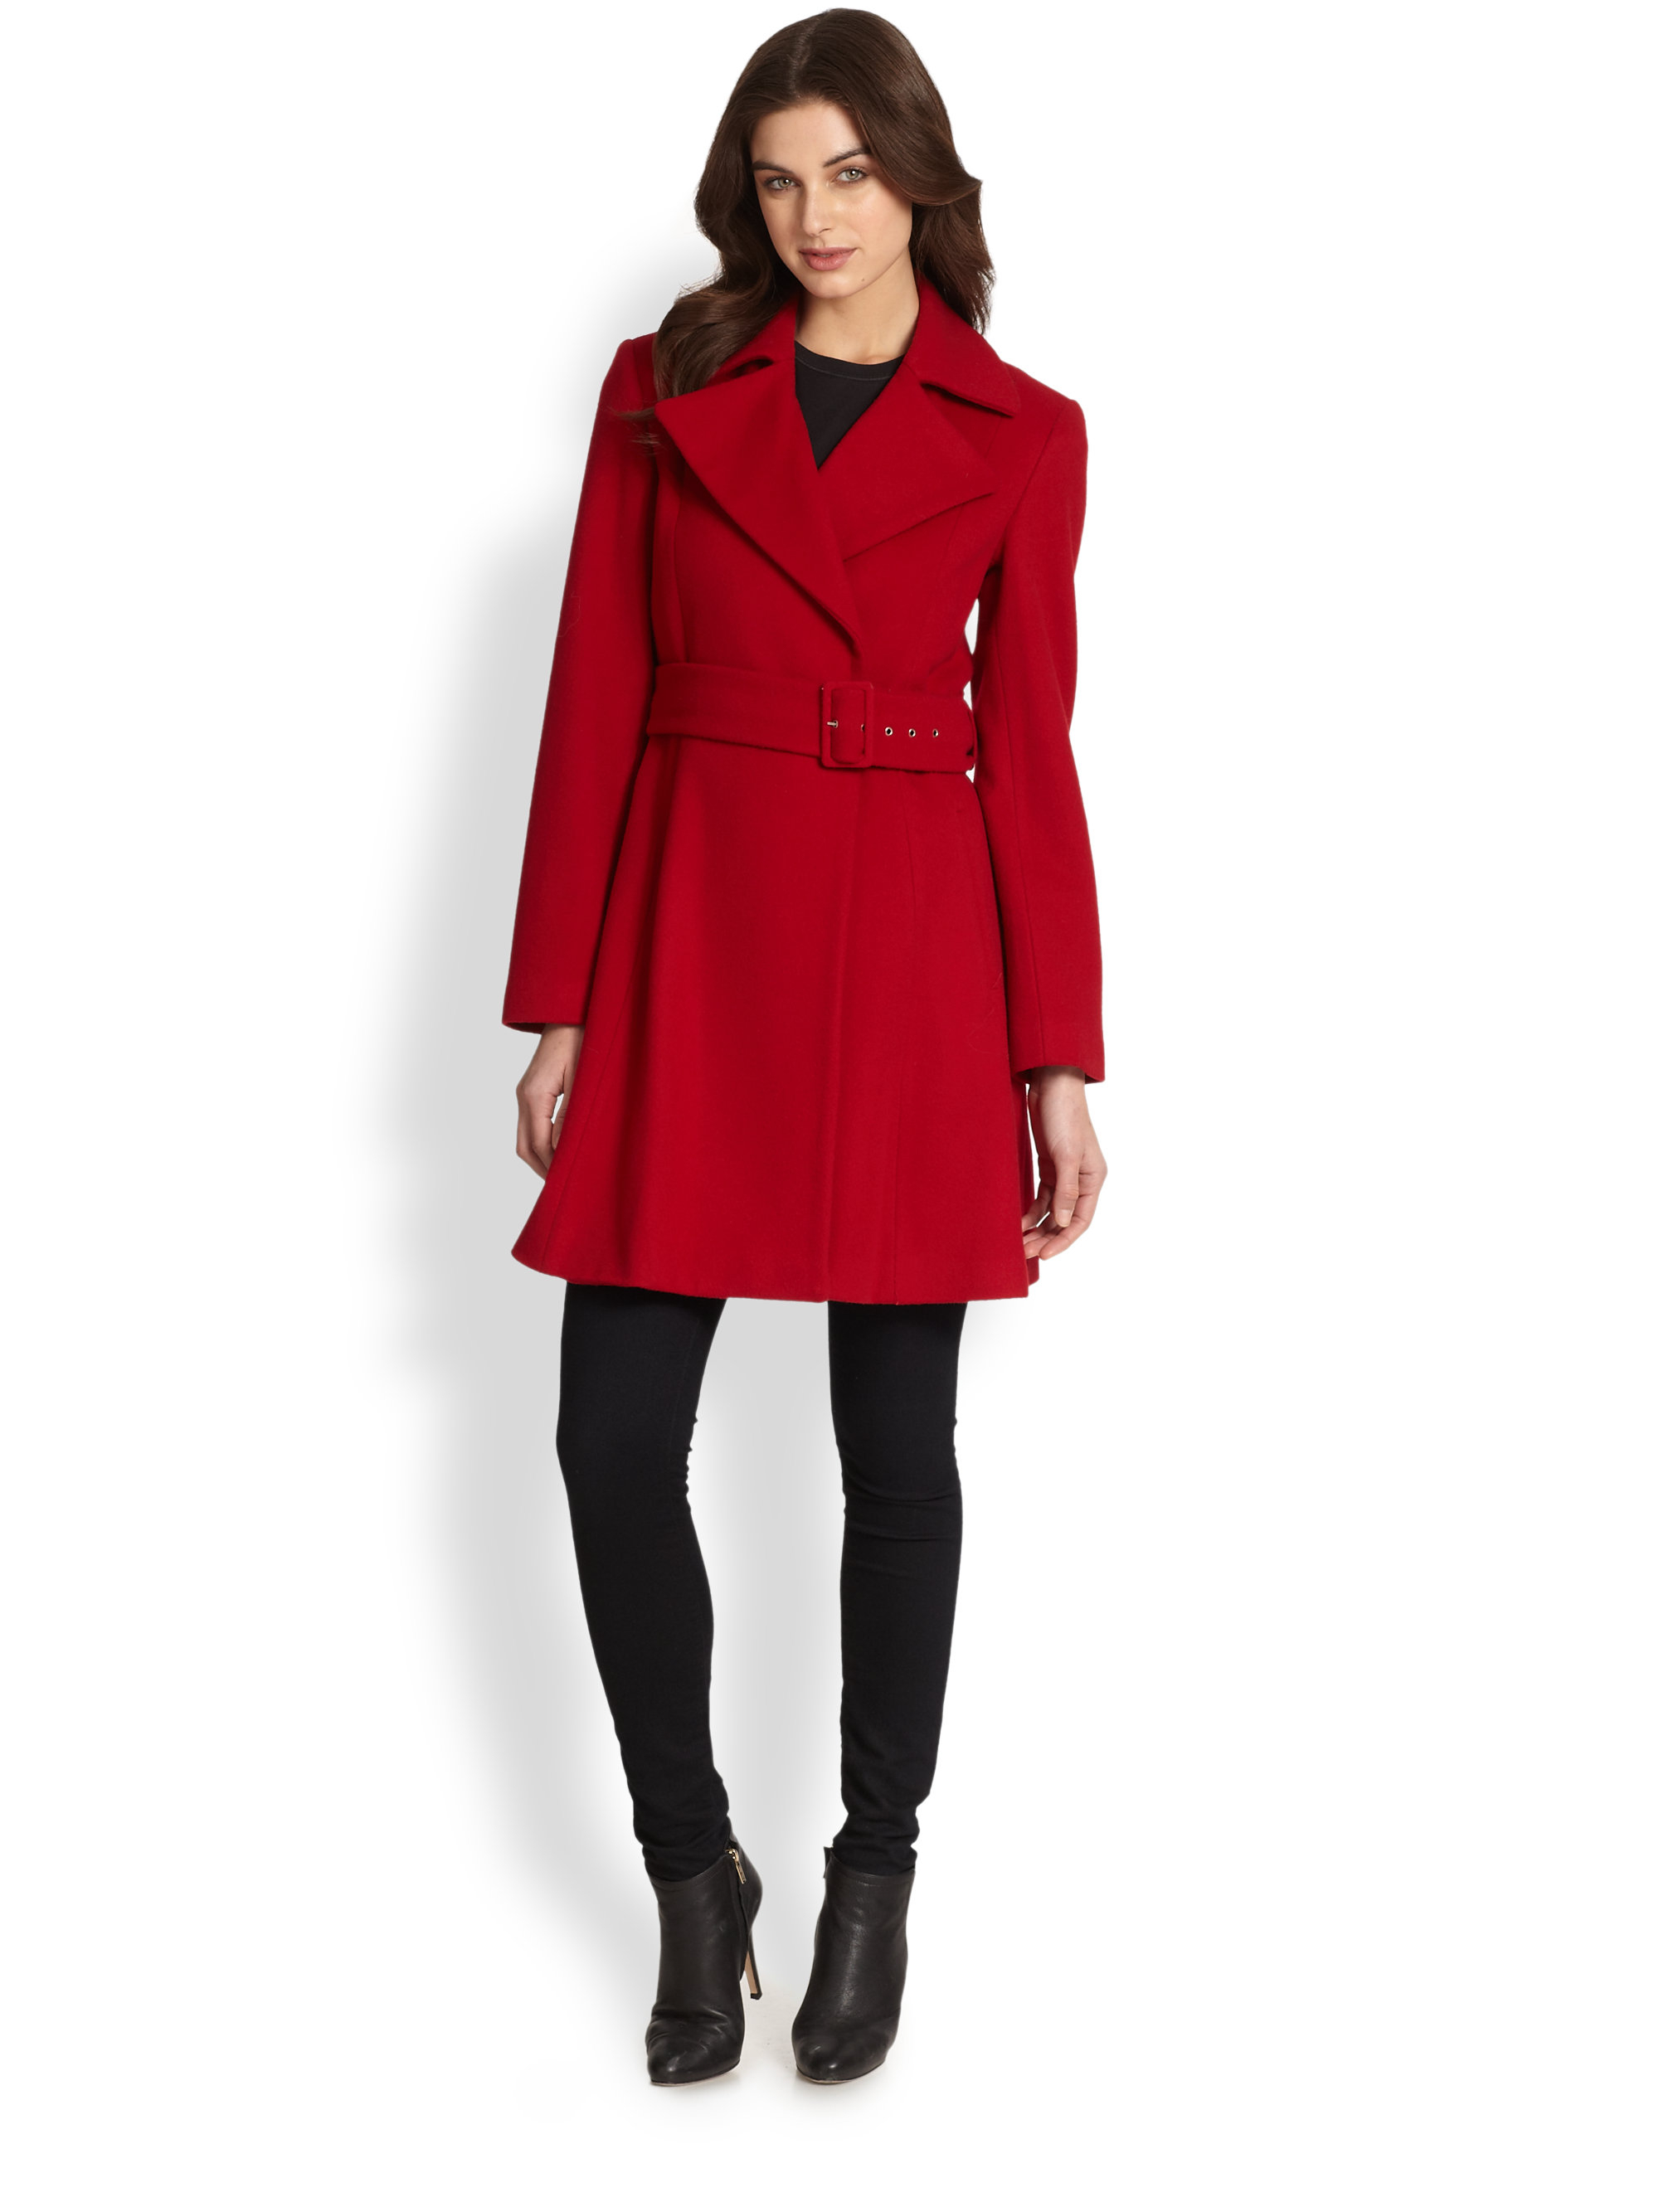 Sofia cashmere Wool Cashmere Belted Coat in Red | Lyst